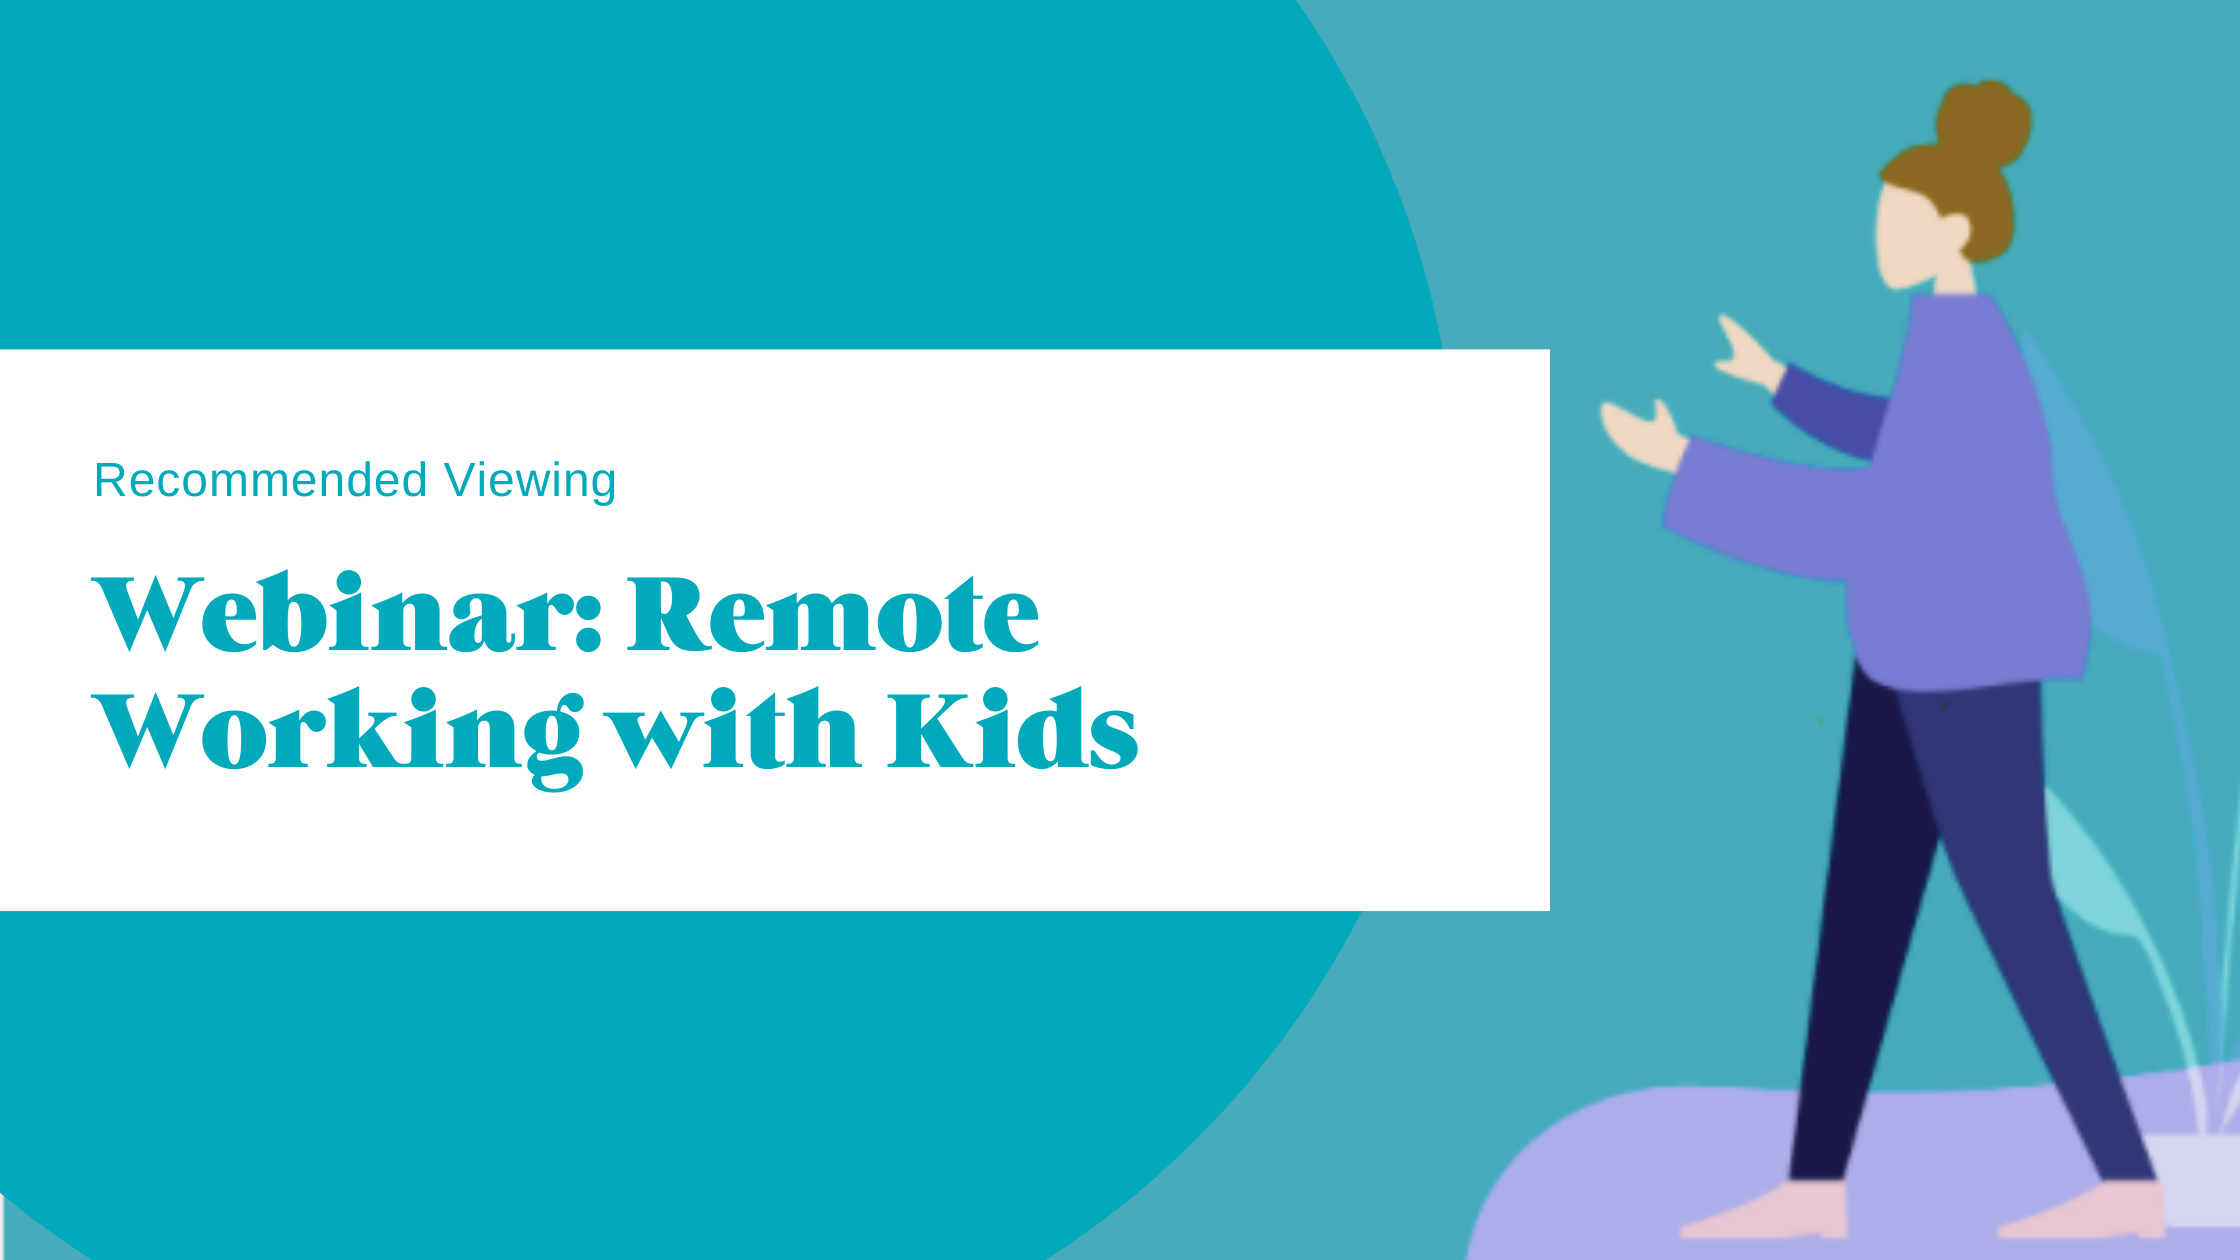 Webinar: Remote Working With Kids